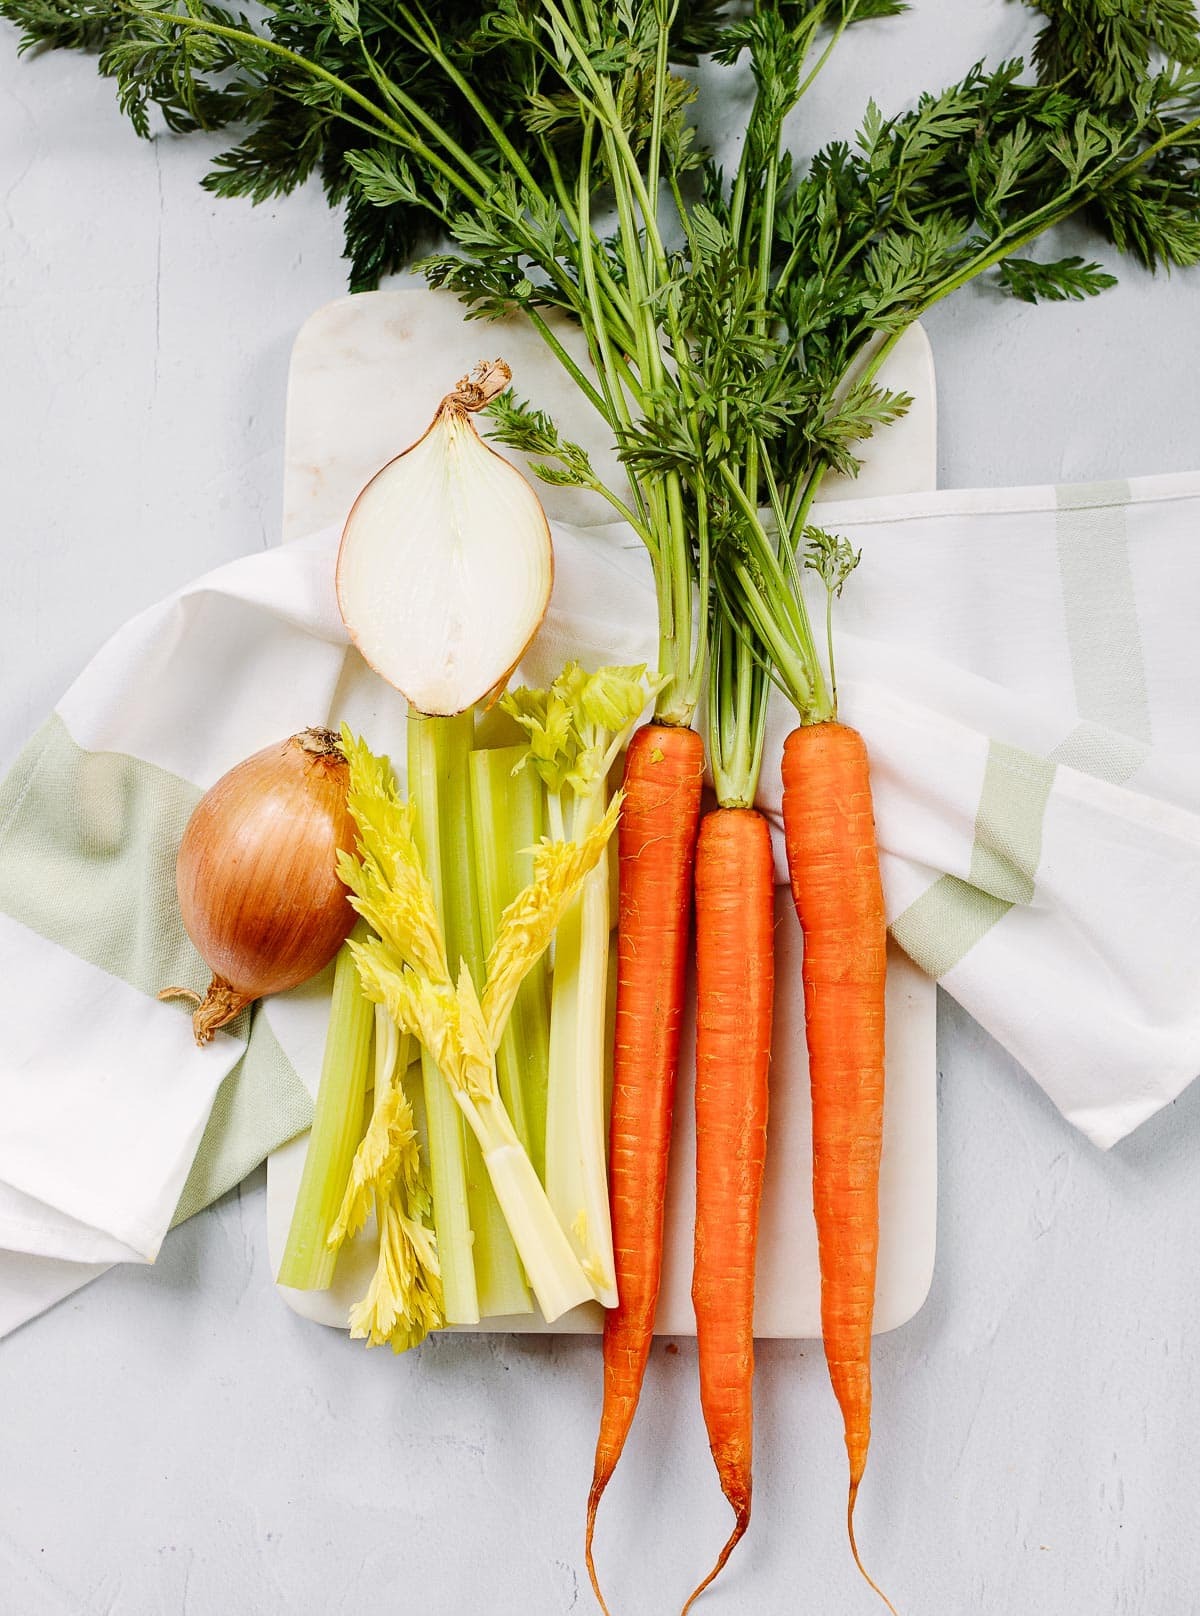 Fresh produce ingredients for homemade chicken soup: onion, celery and carrots.